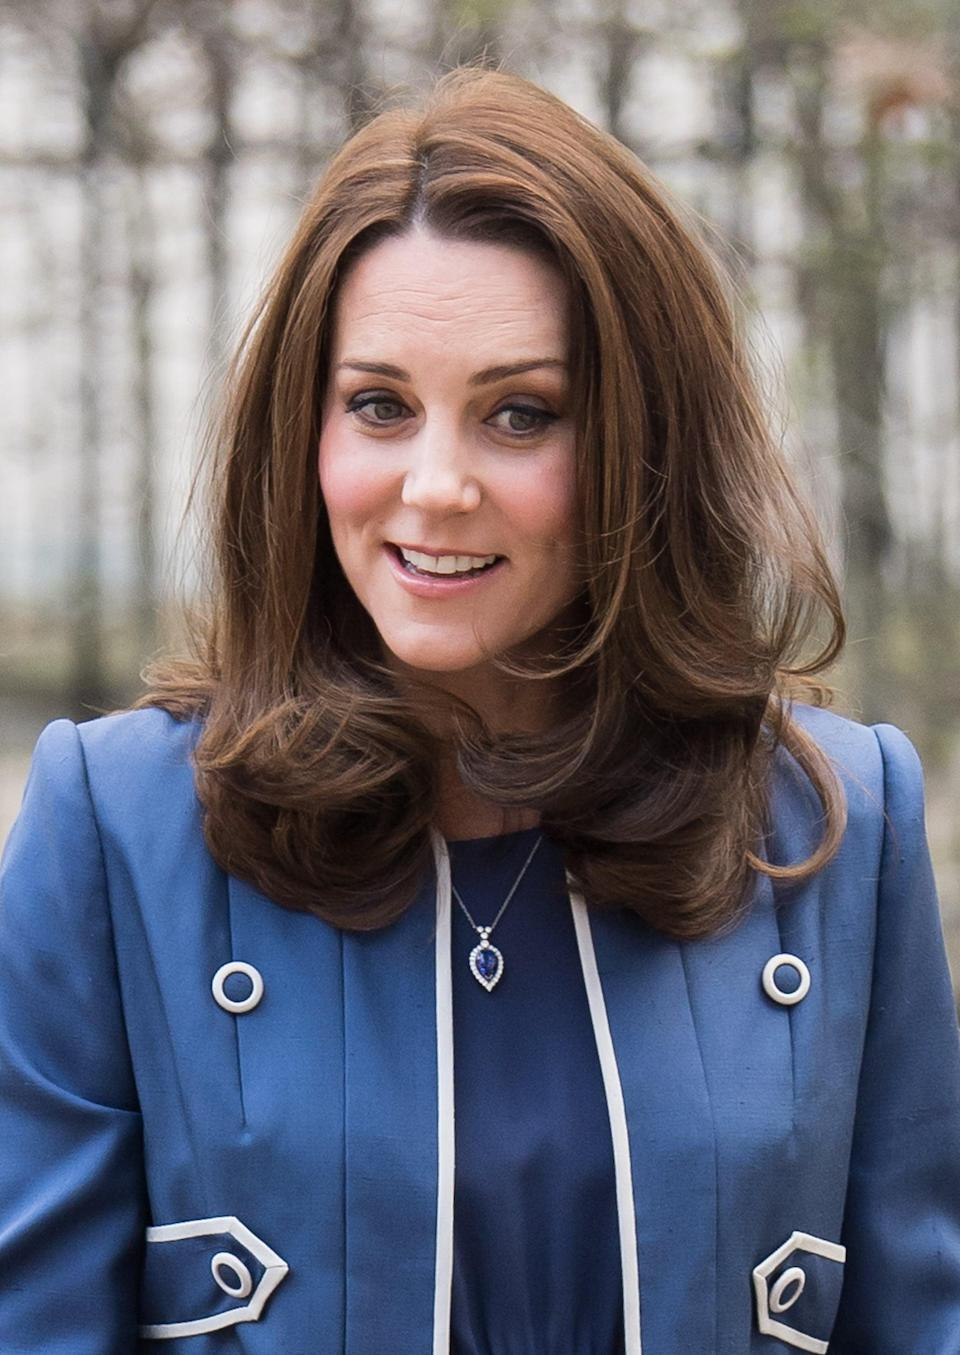 <p>It's her bouncy blowout but rumpled and tousled for a much more casual vibe than we're used to seeing from the duchess. With a clean side part, it makes for the perfect day-time look for royal outings. </p> <p>The duchess's shoulder-length layers styled in a side parting were the perfect day-time look for royal outings. </p>